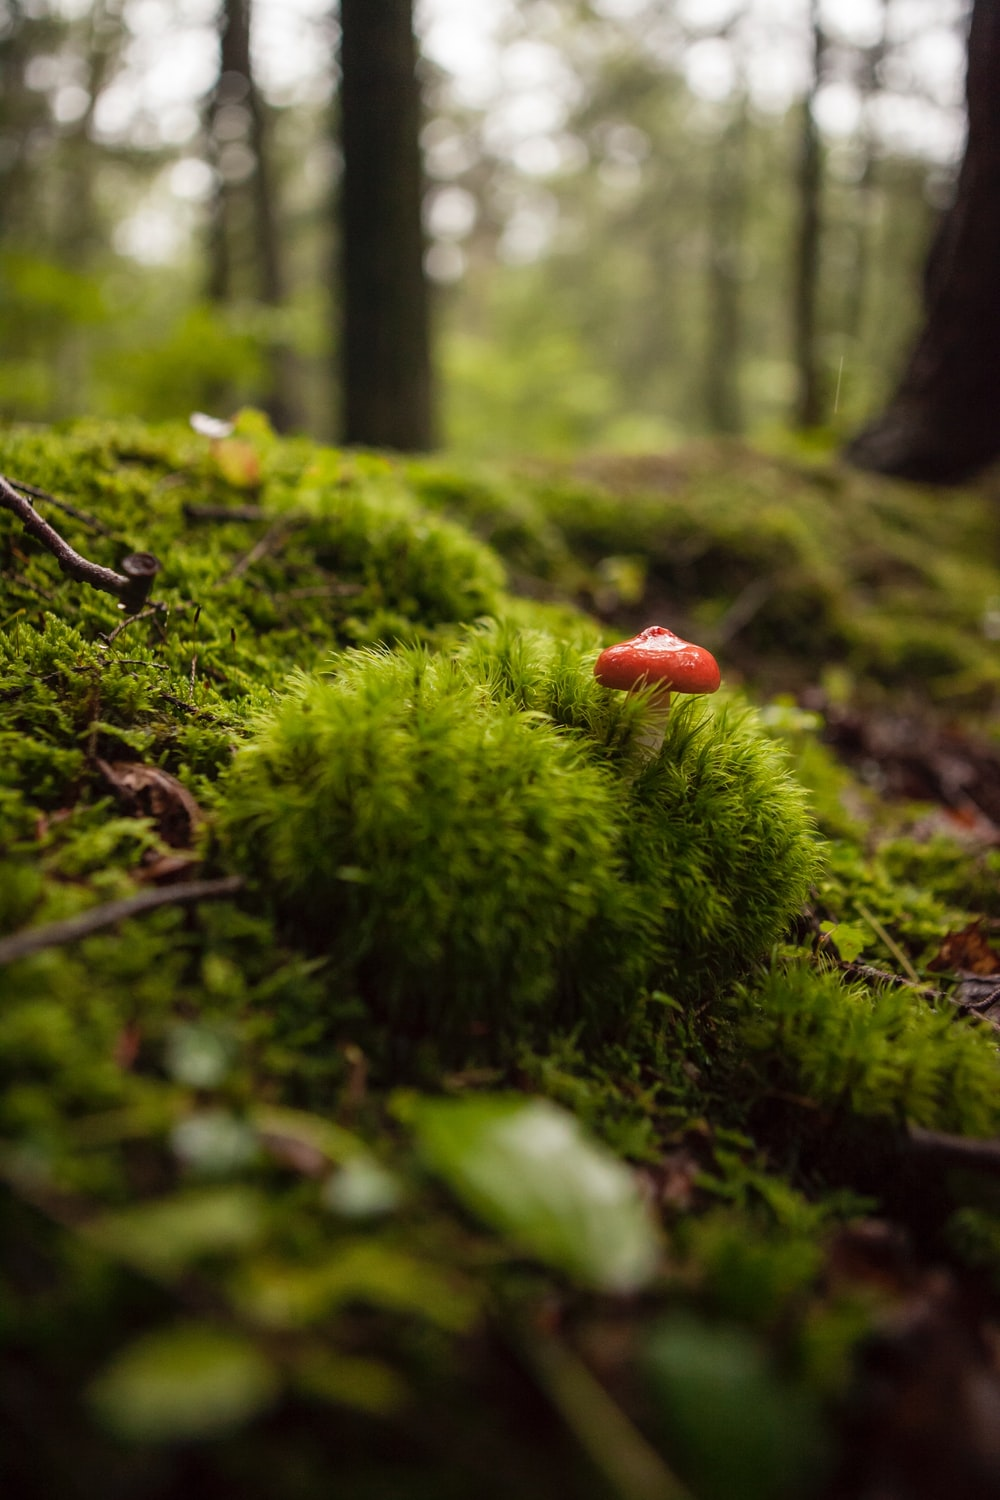 red mushroom growing on green grass at daytime